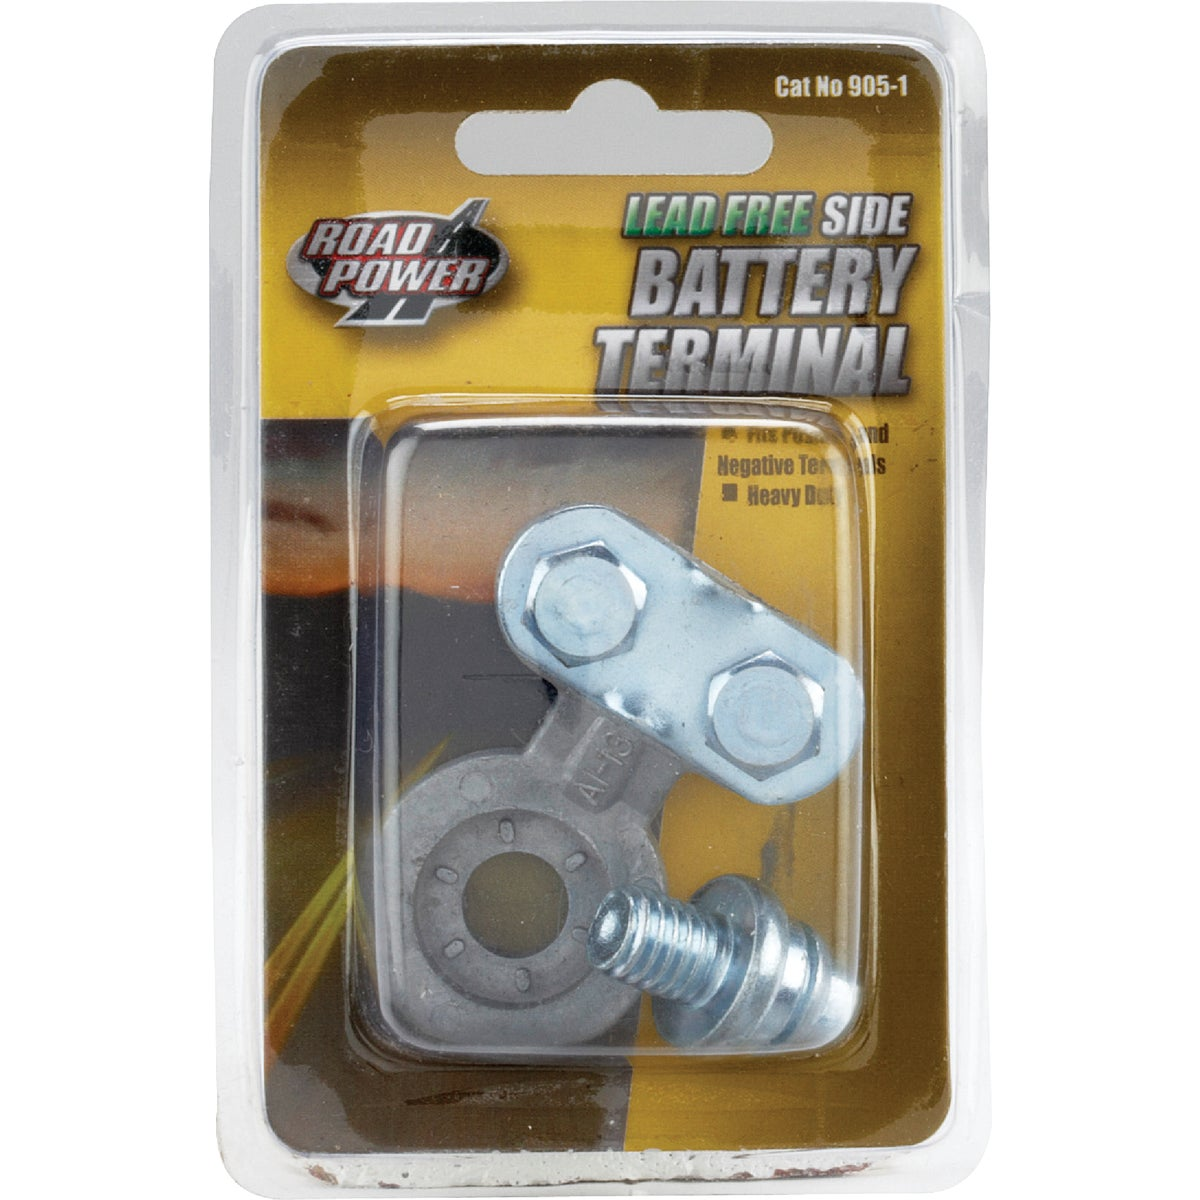 SIDE BATTERY TERMINAL - 905-1 by Woods Wire Coleman